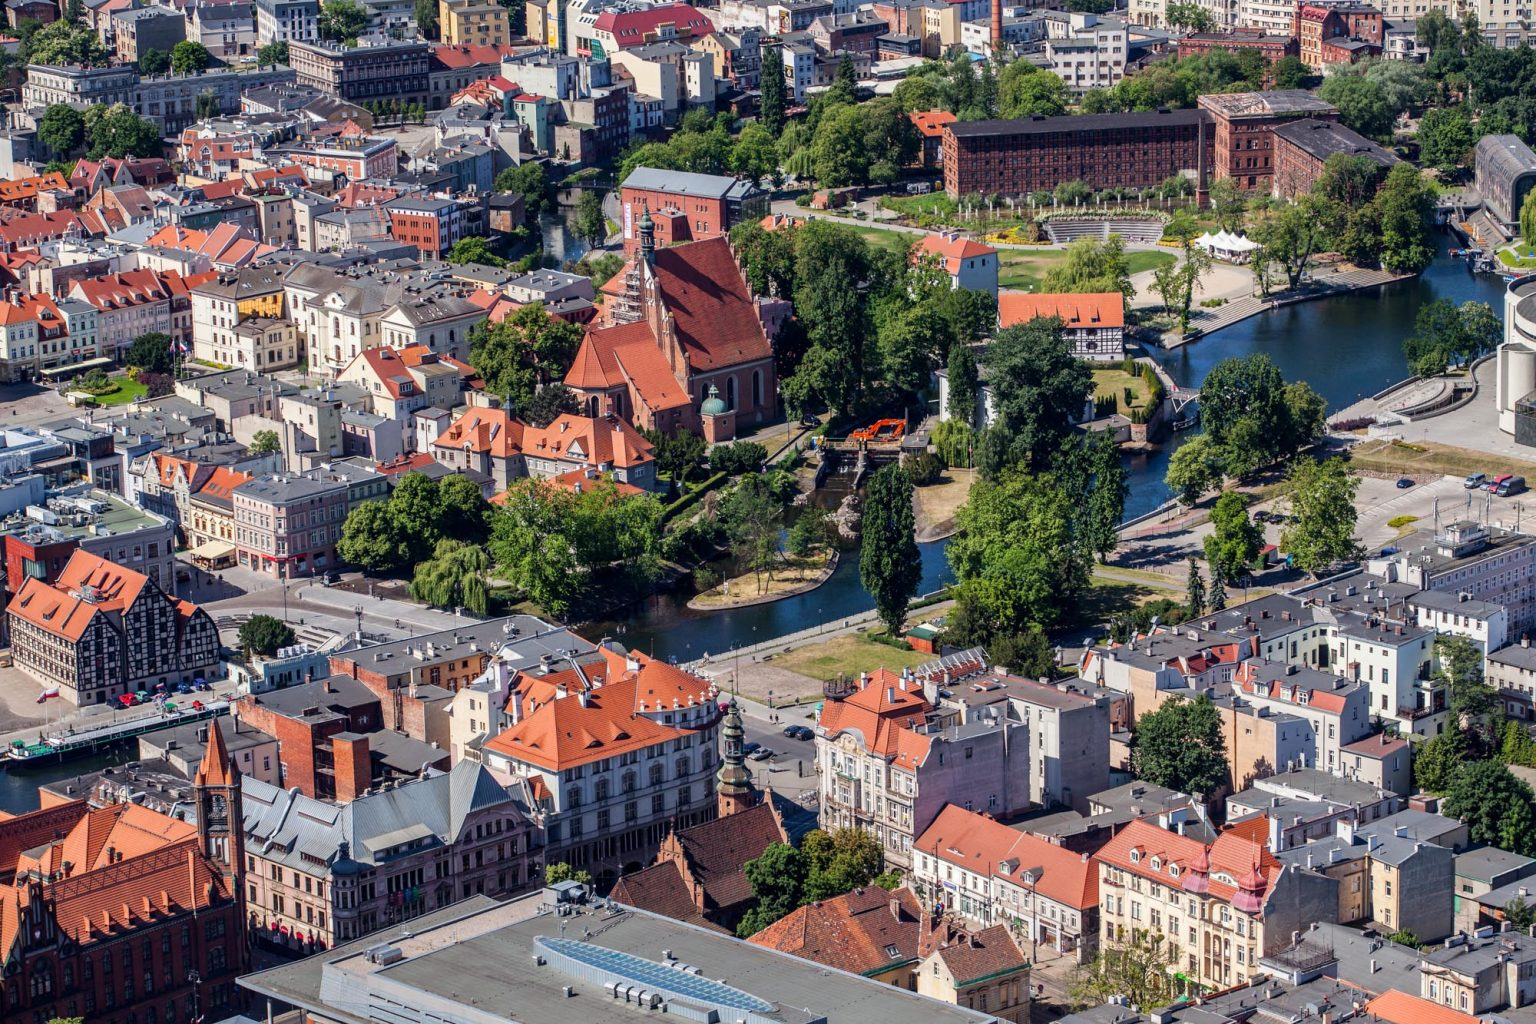 bydgoszcz from the bird's eye